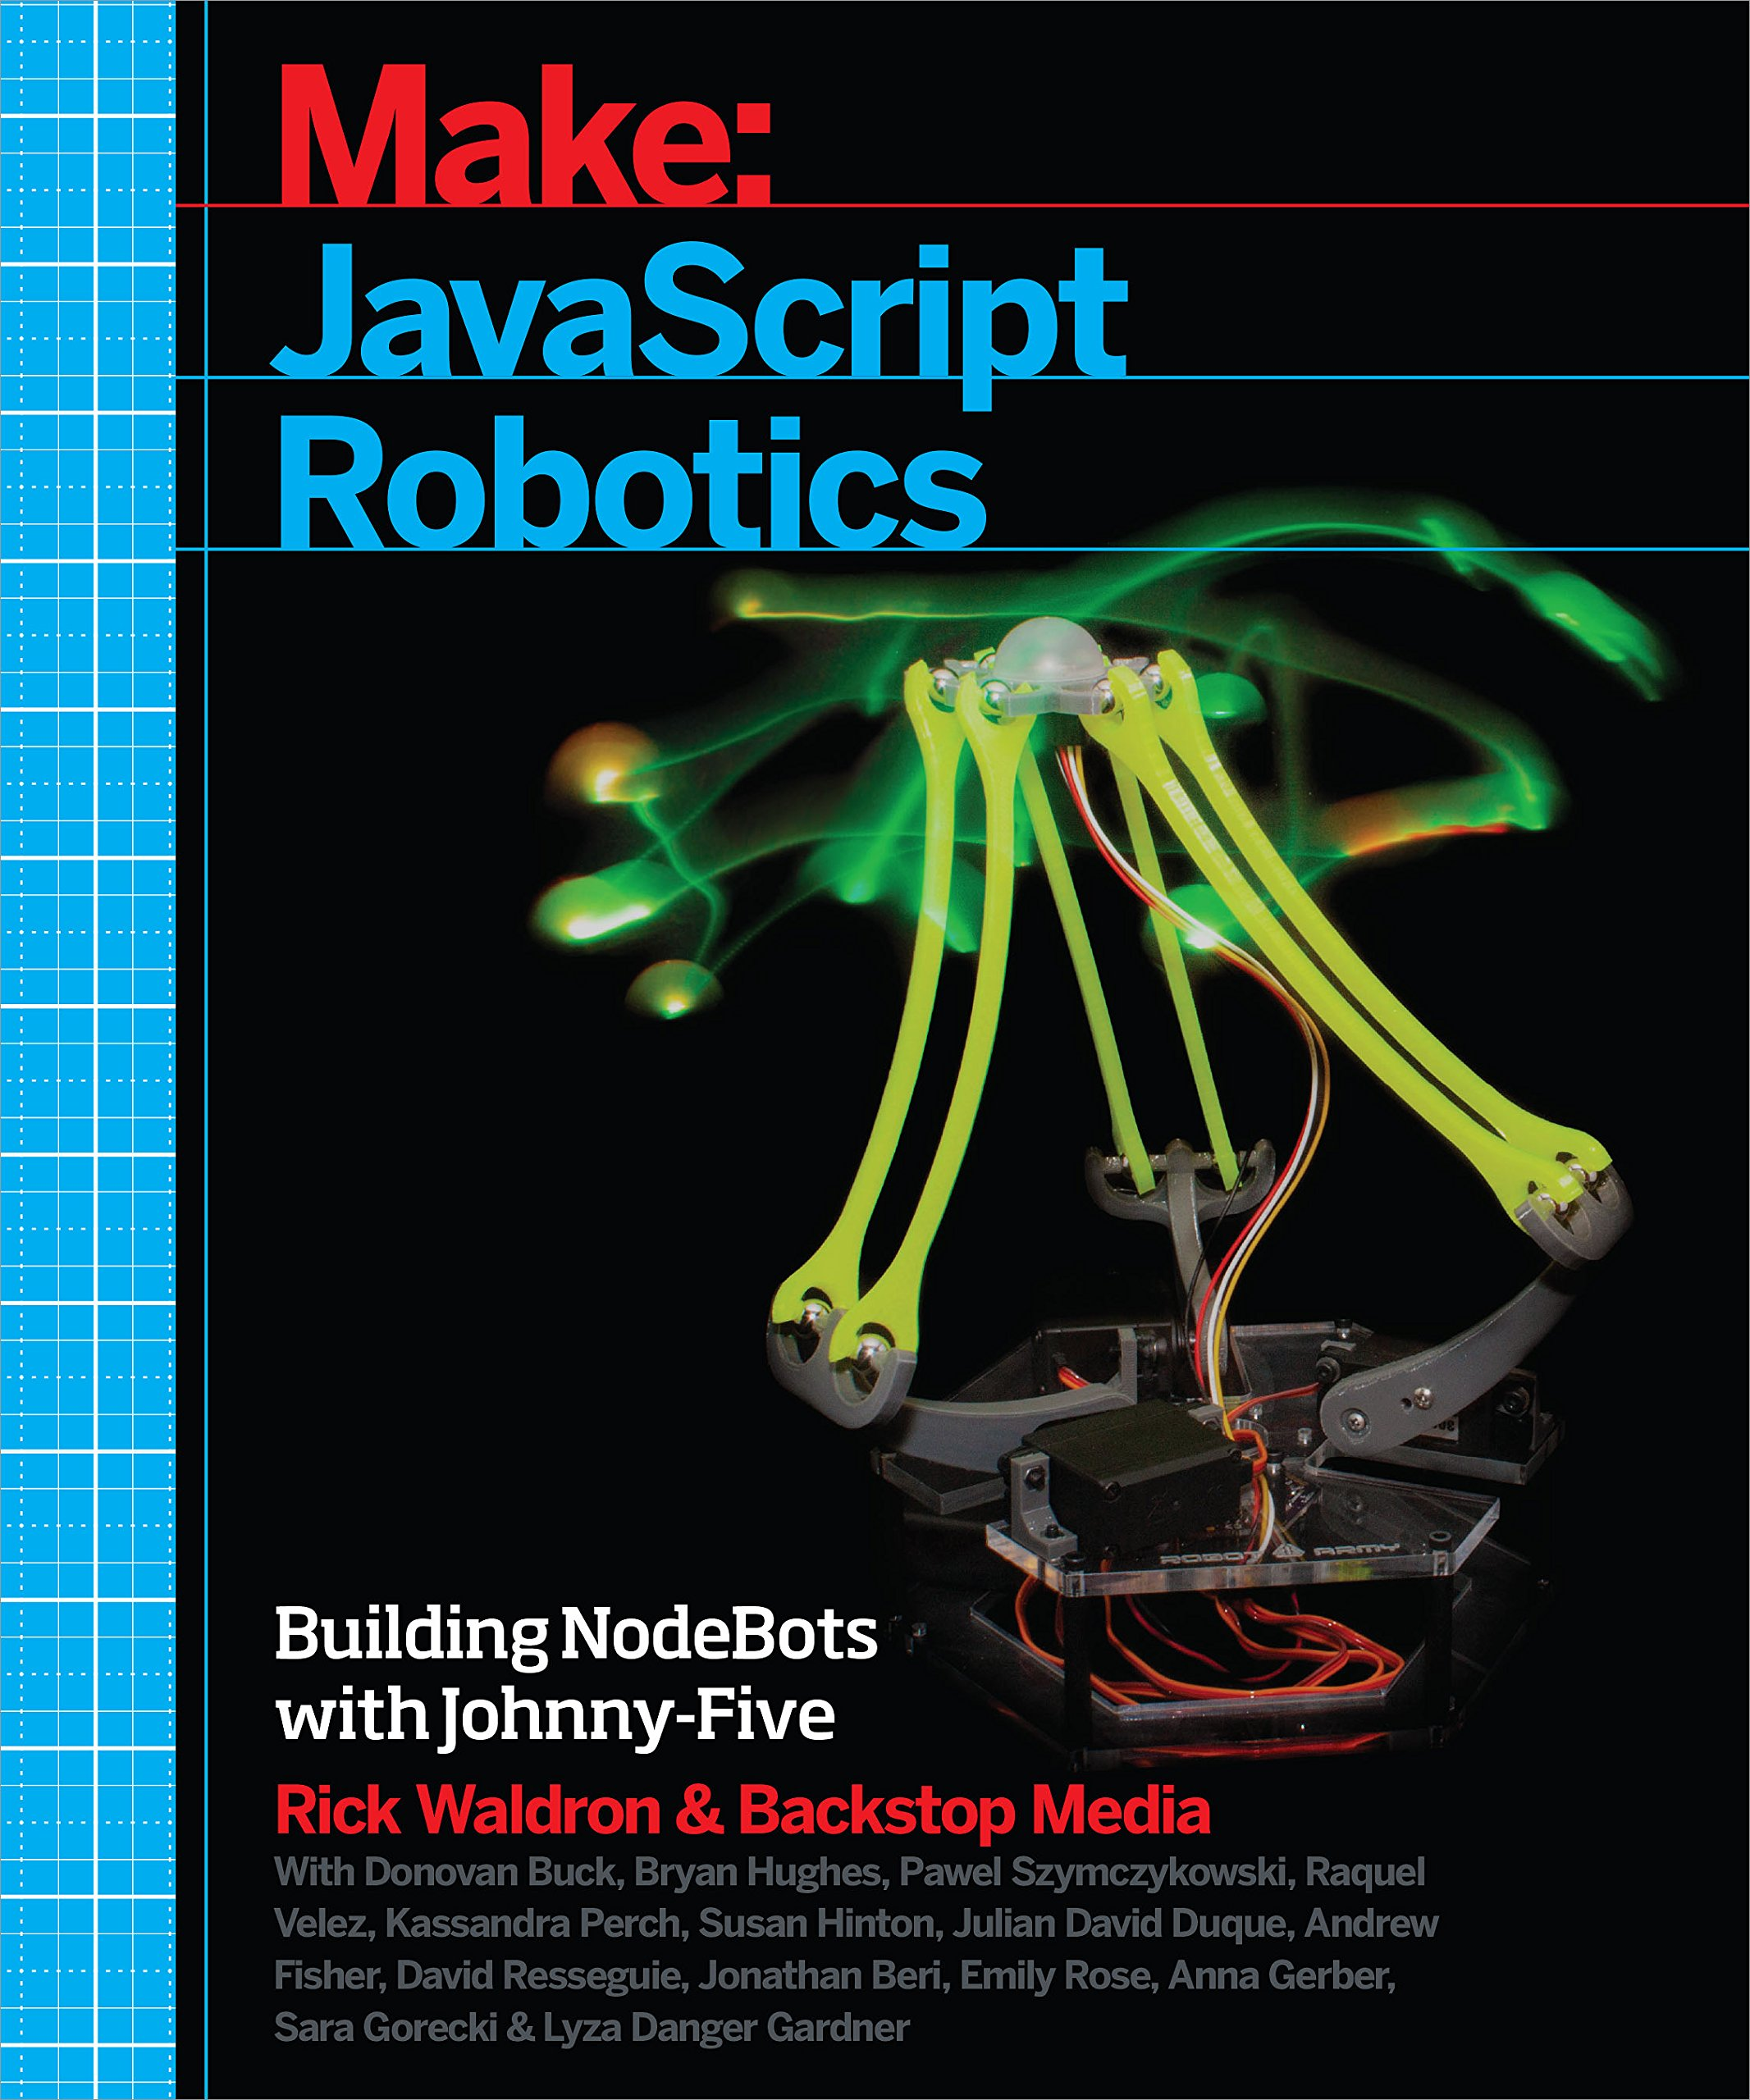 JavaScript Robotics: Building NodeBots with Johnny-Five, Raspberry Pi, Arduino, and BeagleBone (Make) by Maker Media Inc